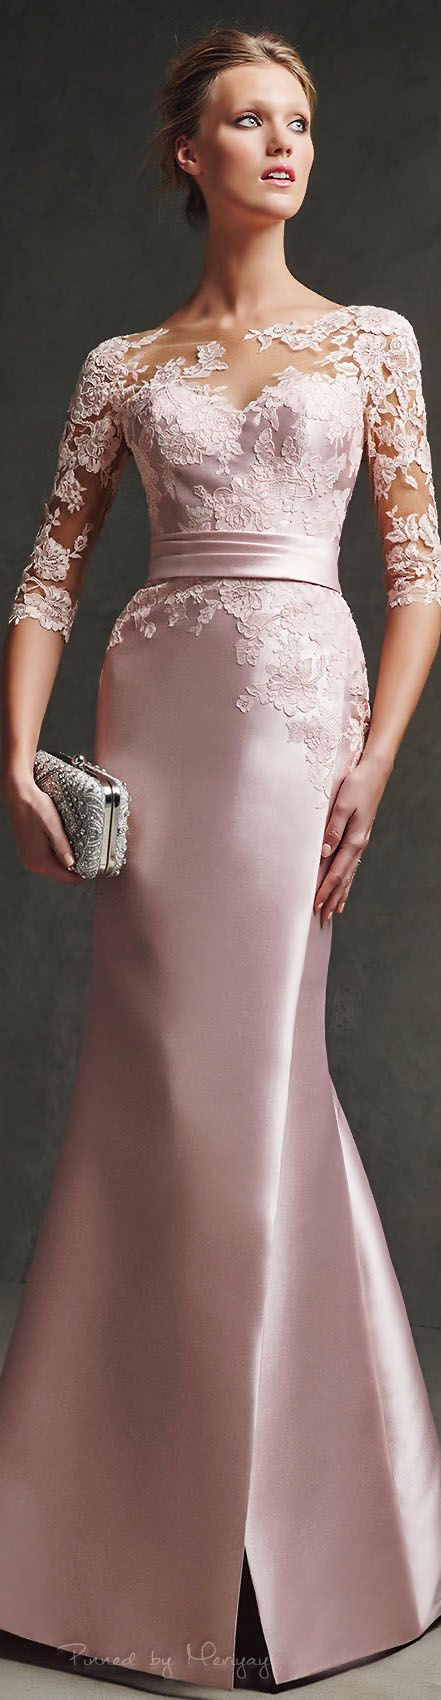 18 Long Length Mother Of The Bride And Groom Dresses Page 2